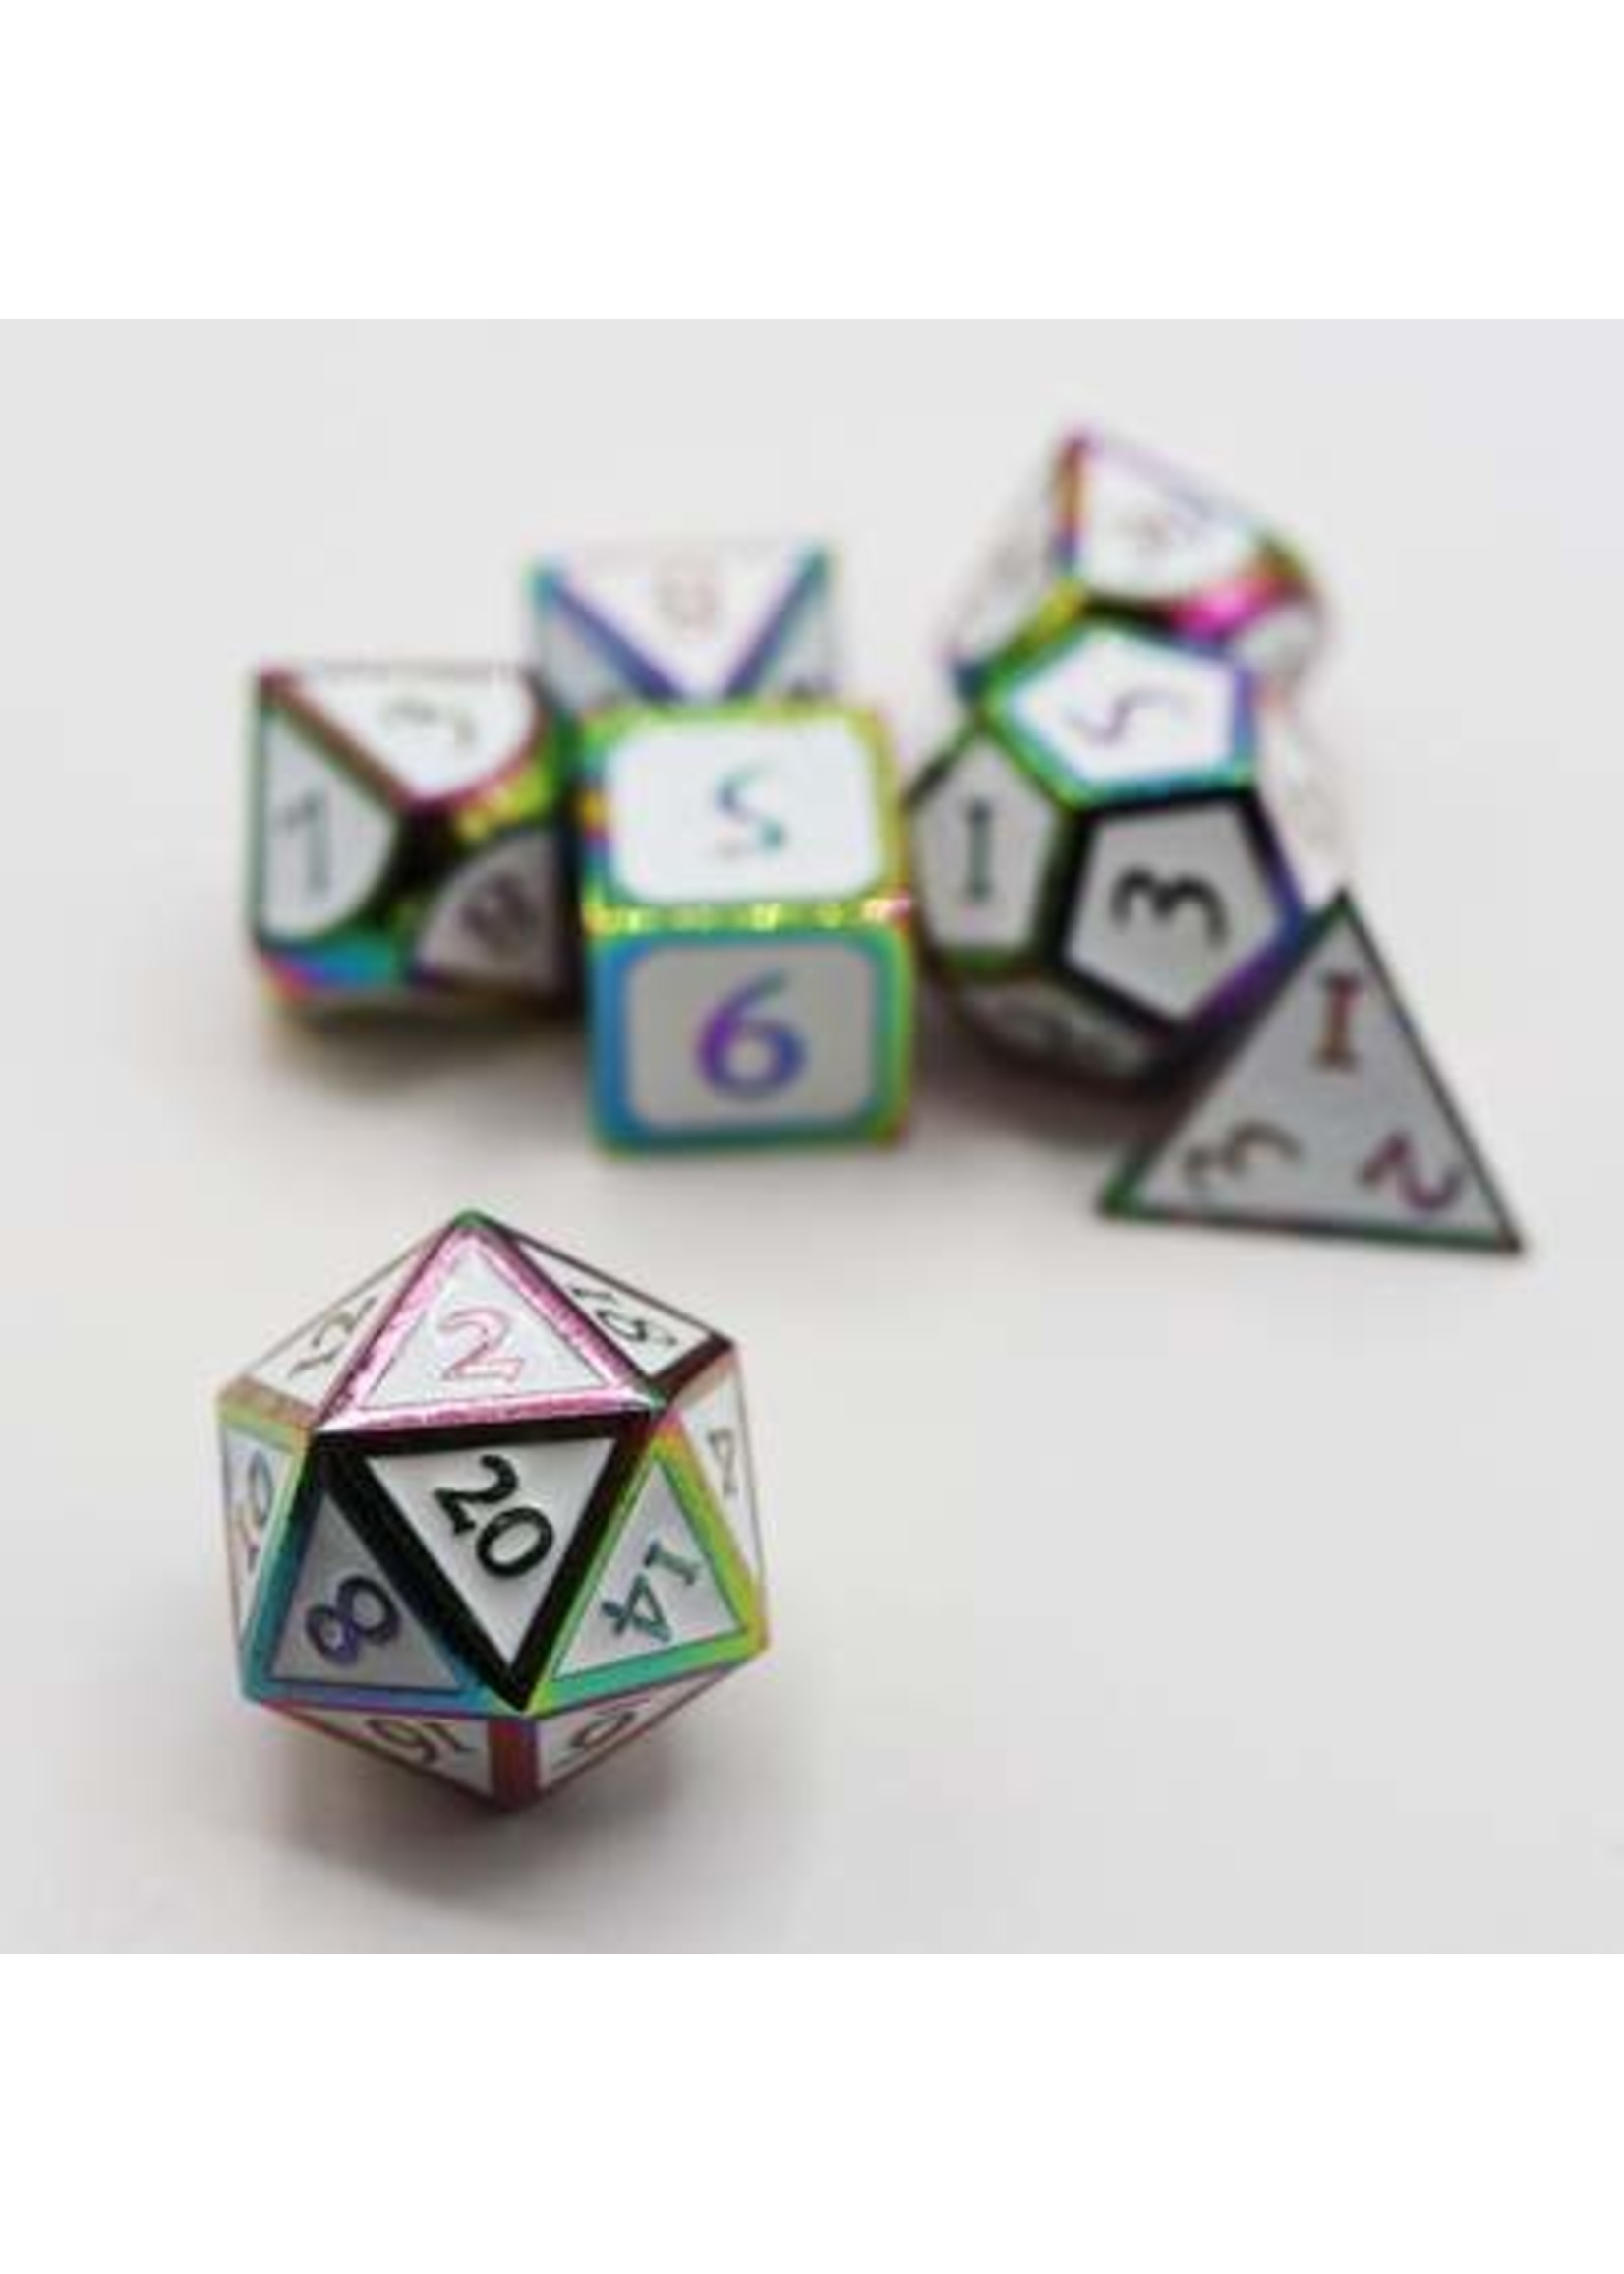 Burnt Opal with White Metal RPG Dice Set